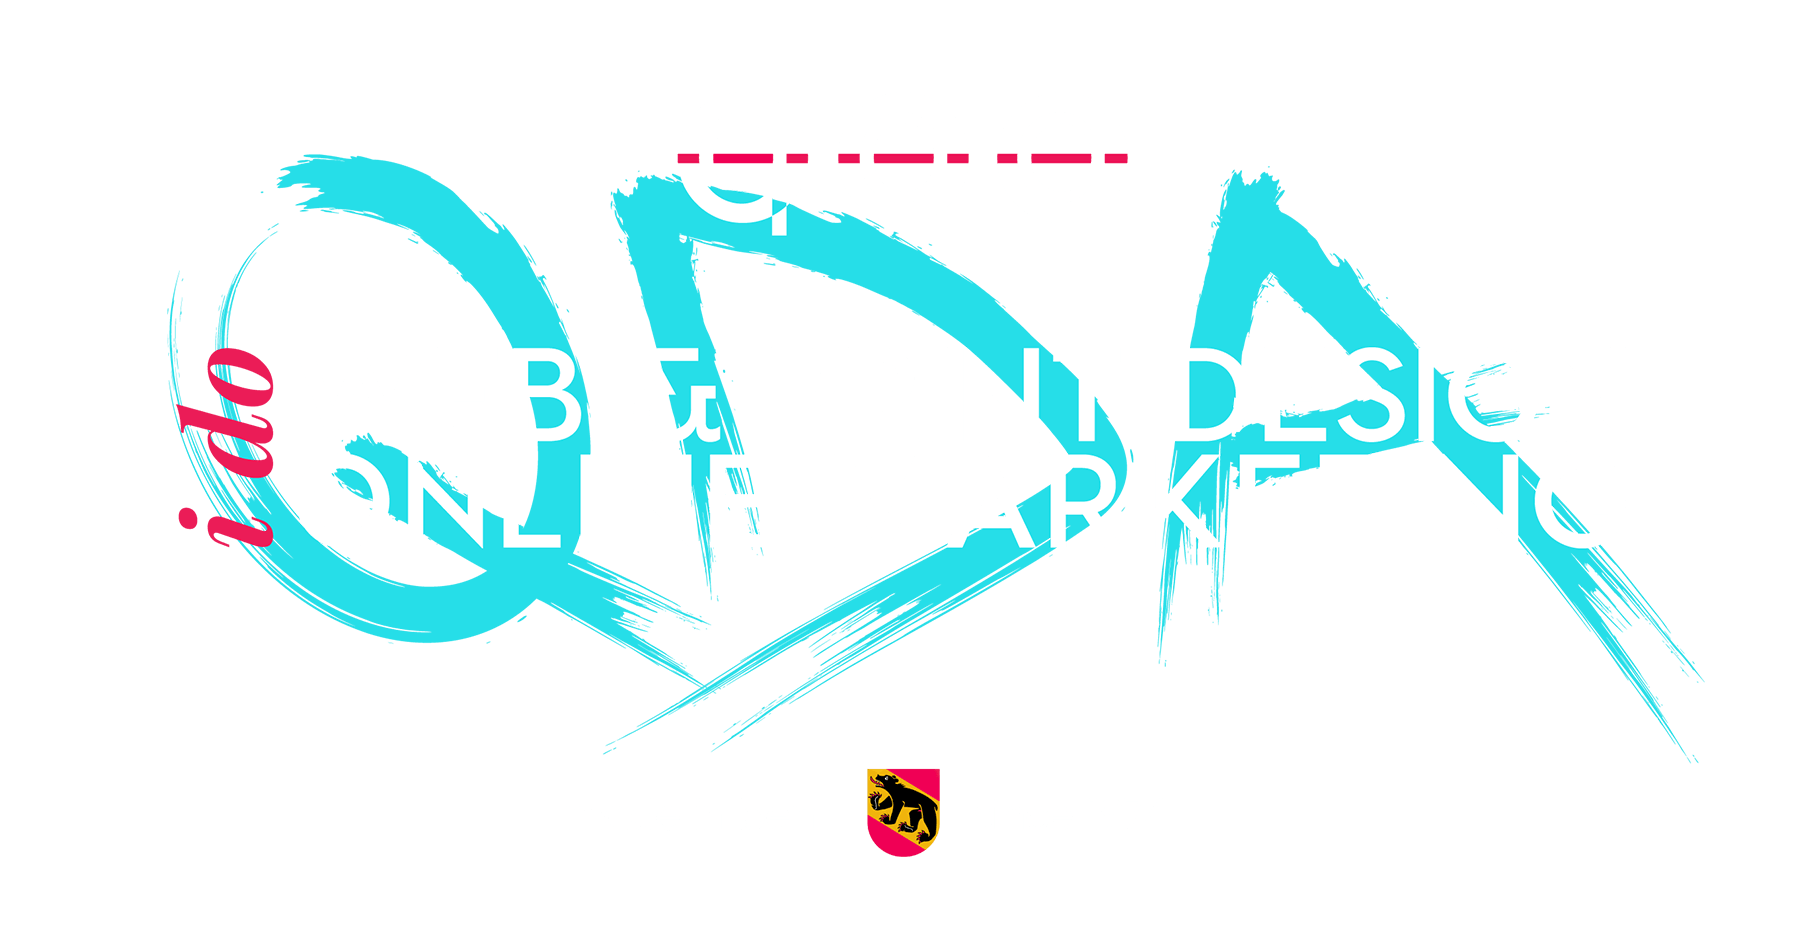 qda design logo ::: web & print design, online marketing